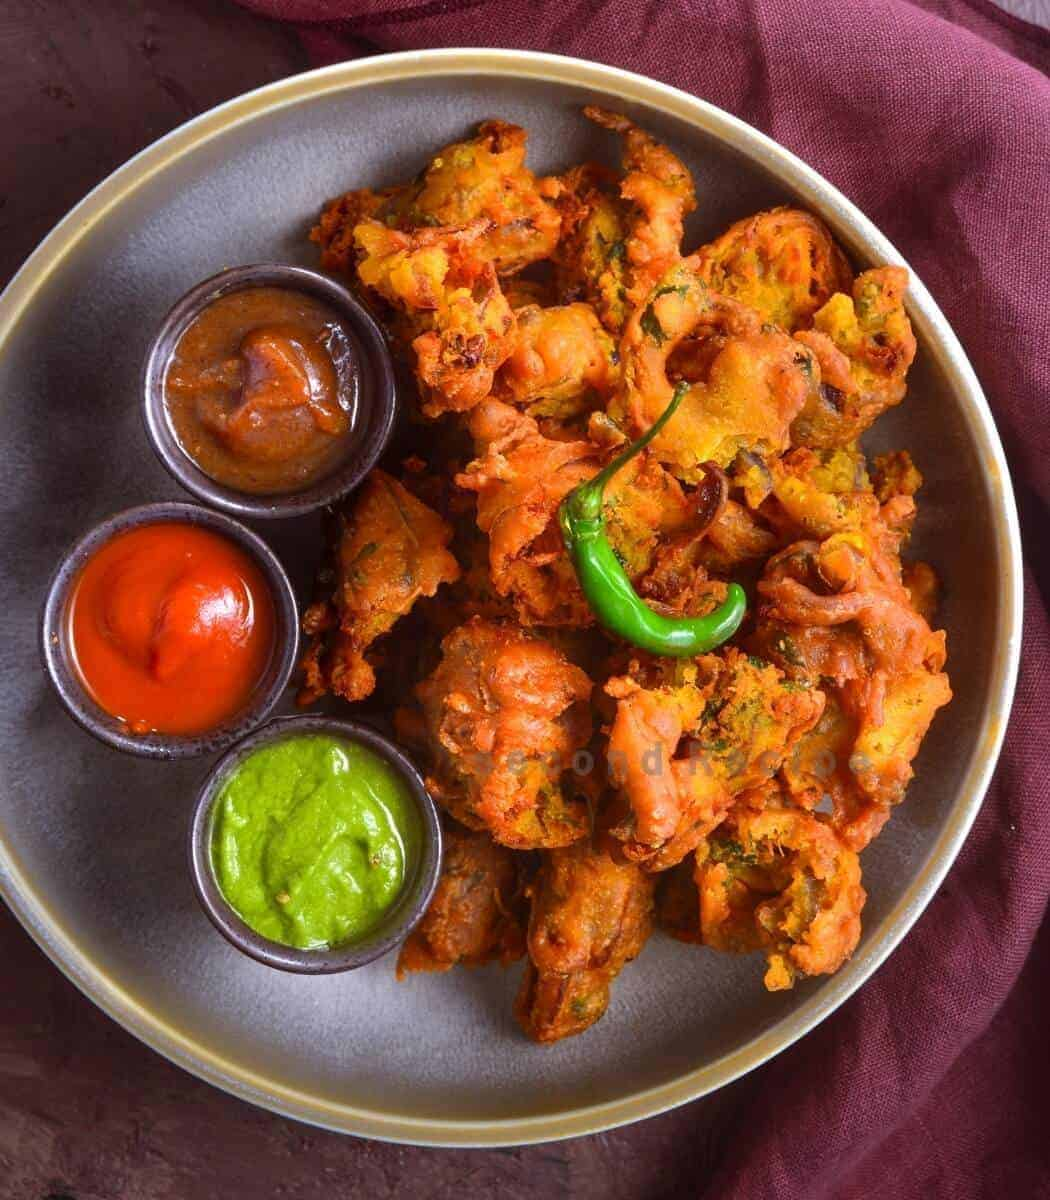 Sanna pakode- Double-fried fritters